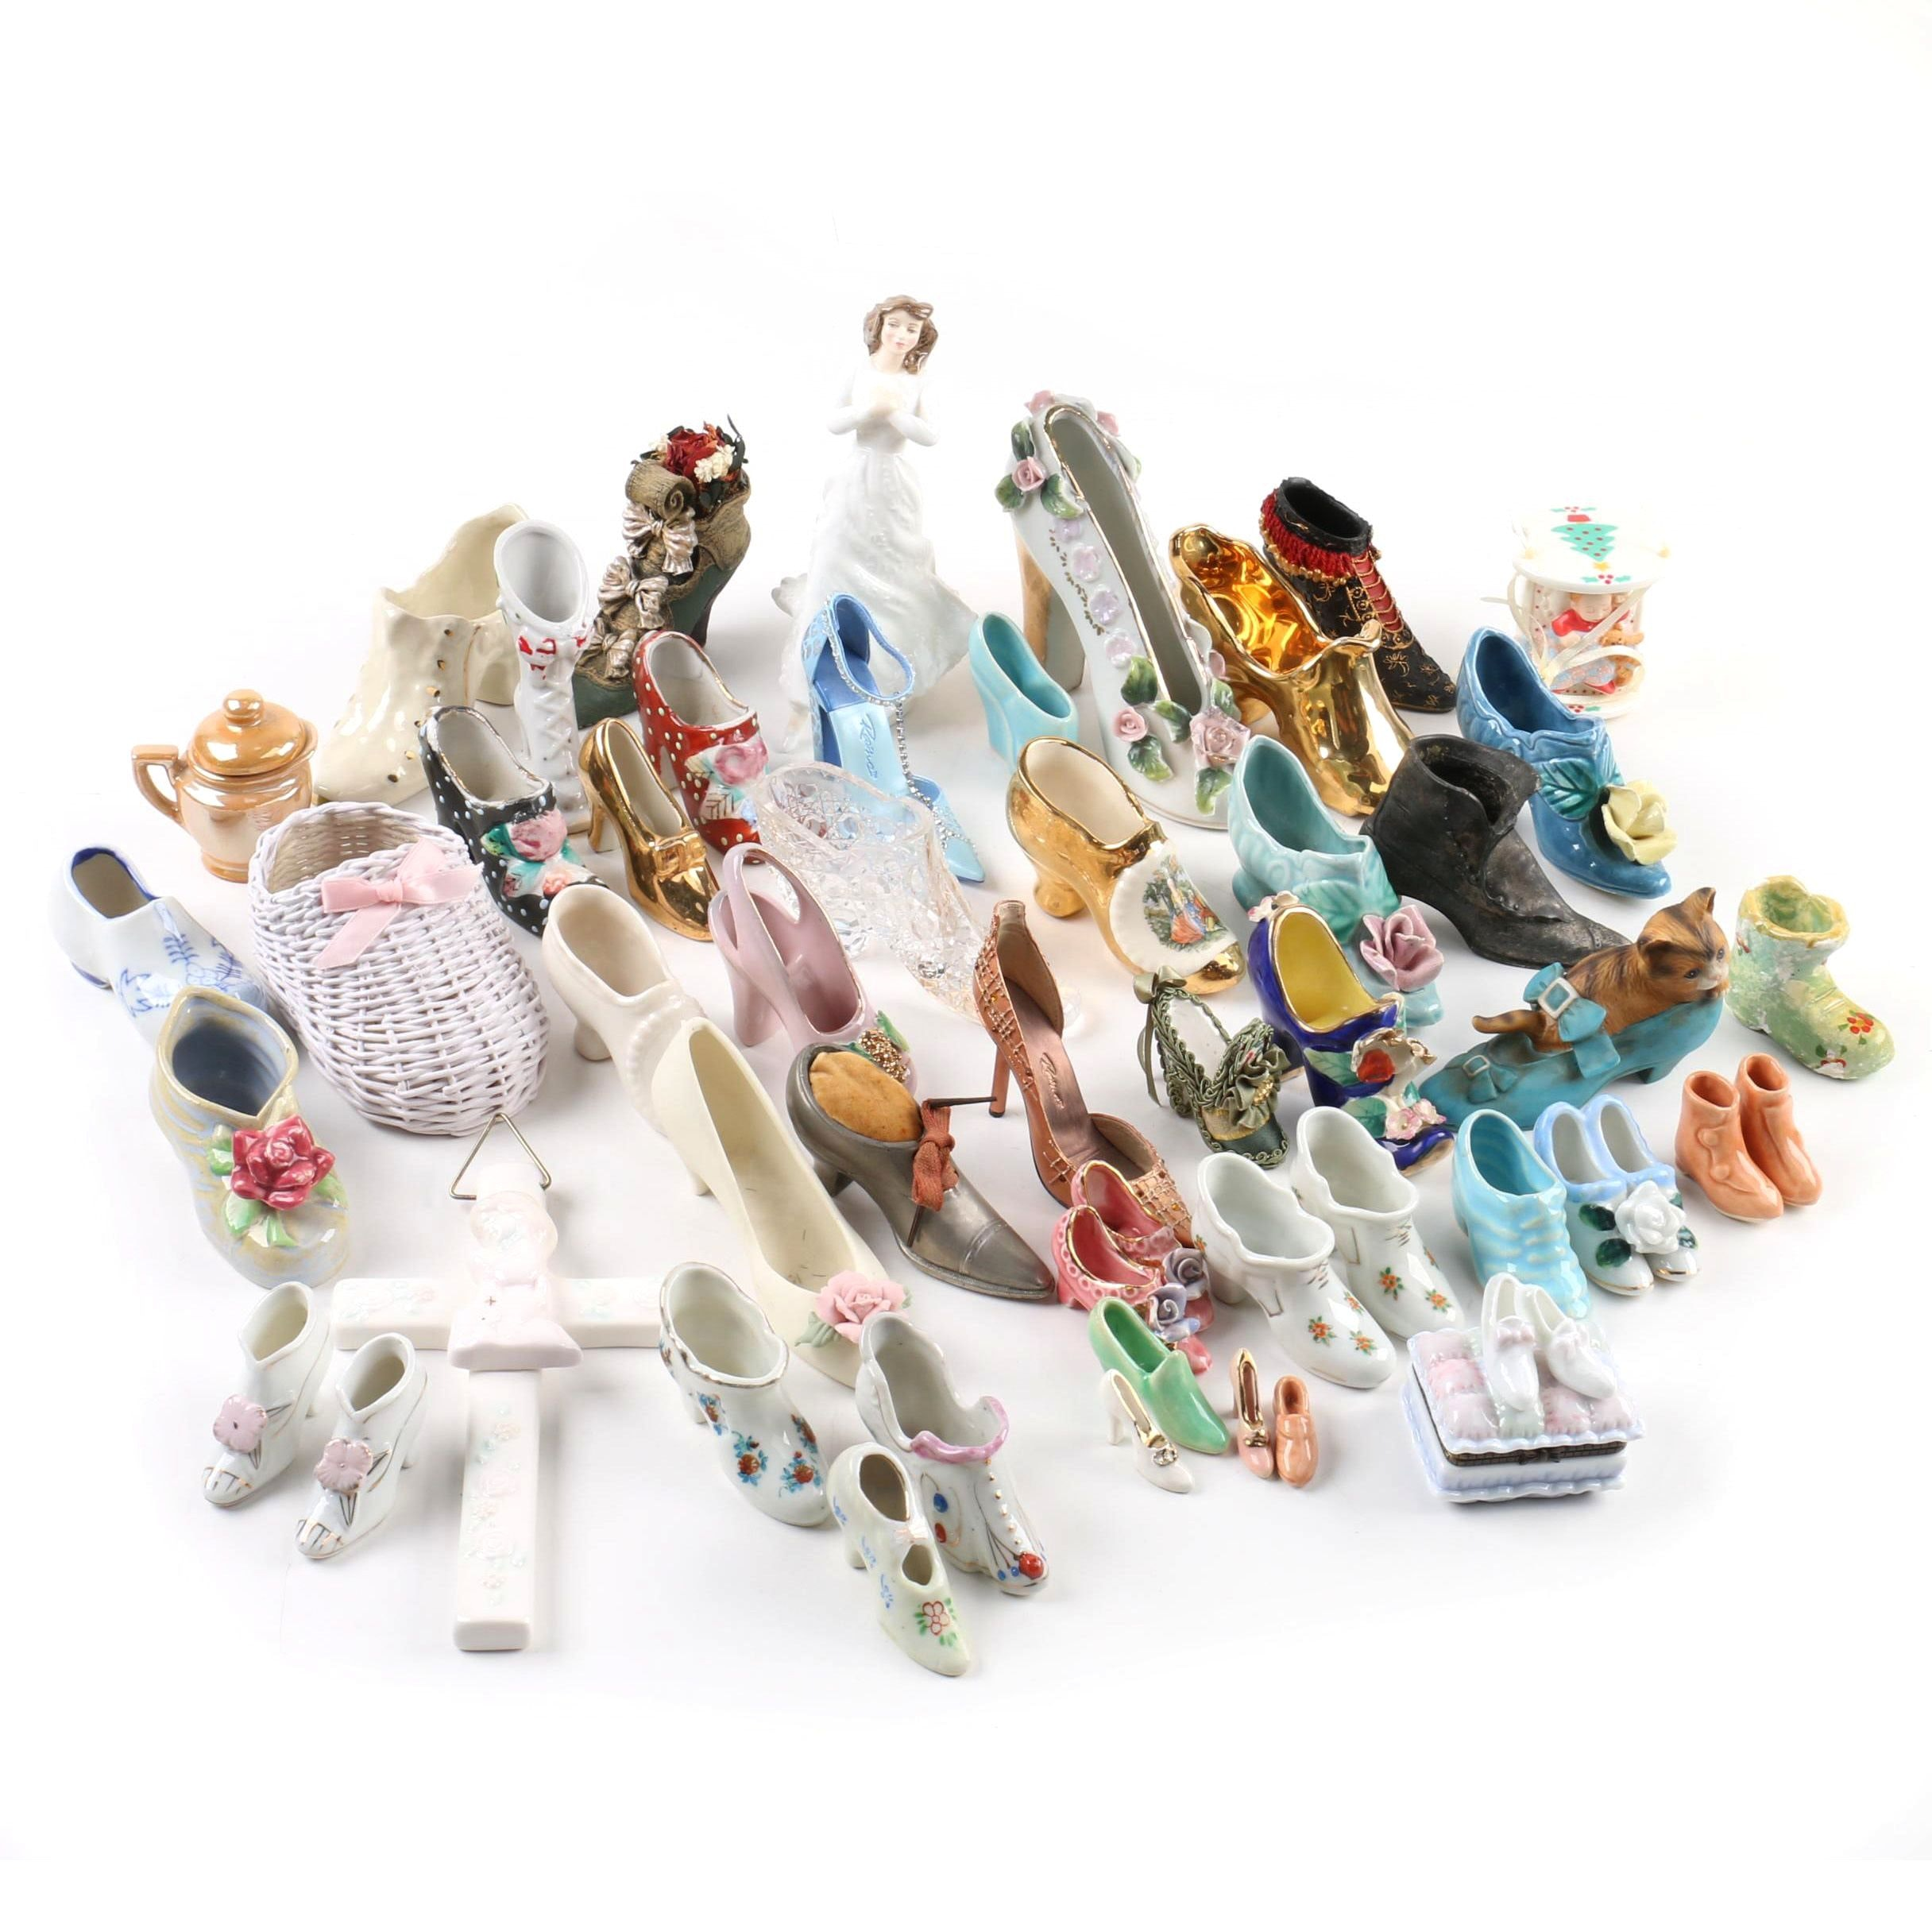 Miniature Shoe Collection and Other Figurines